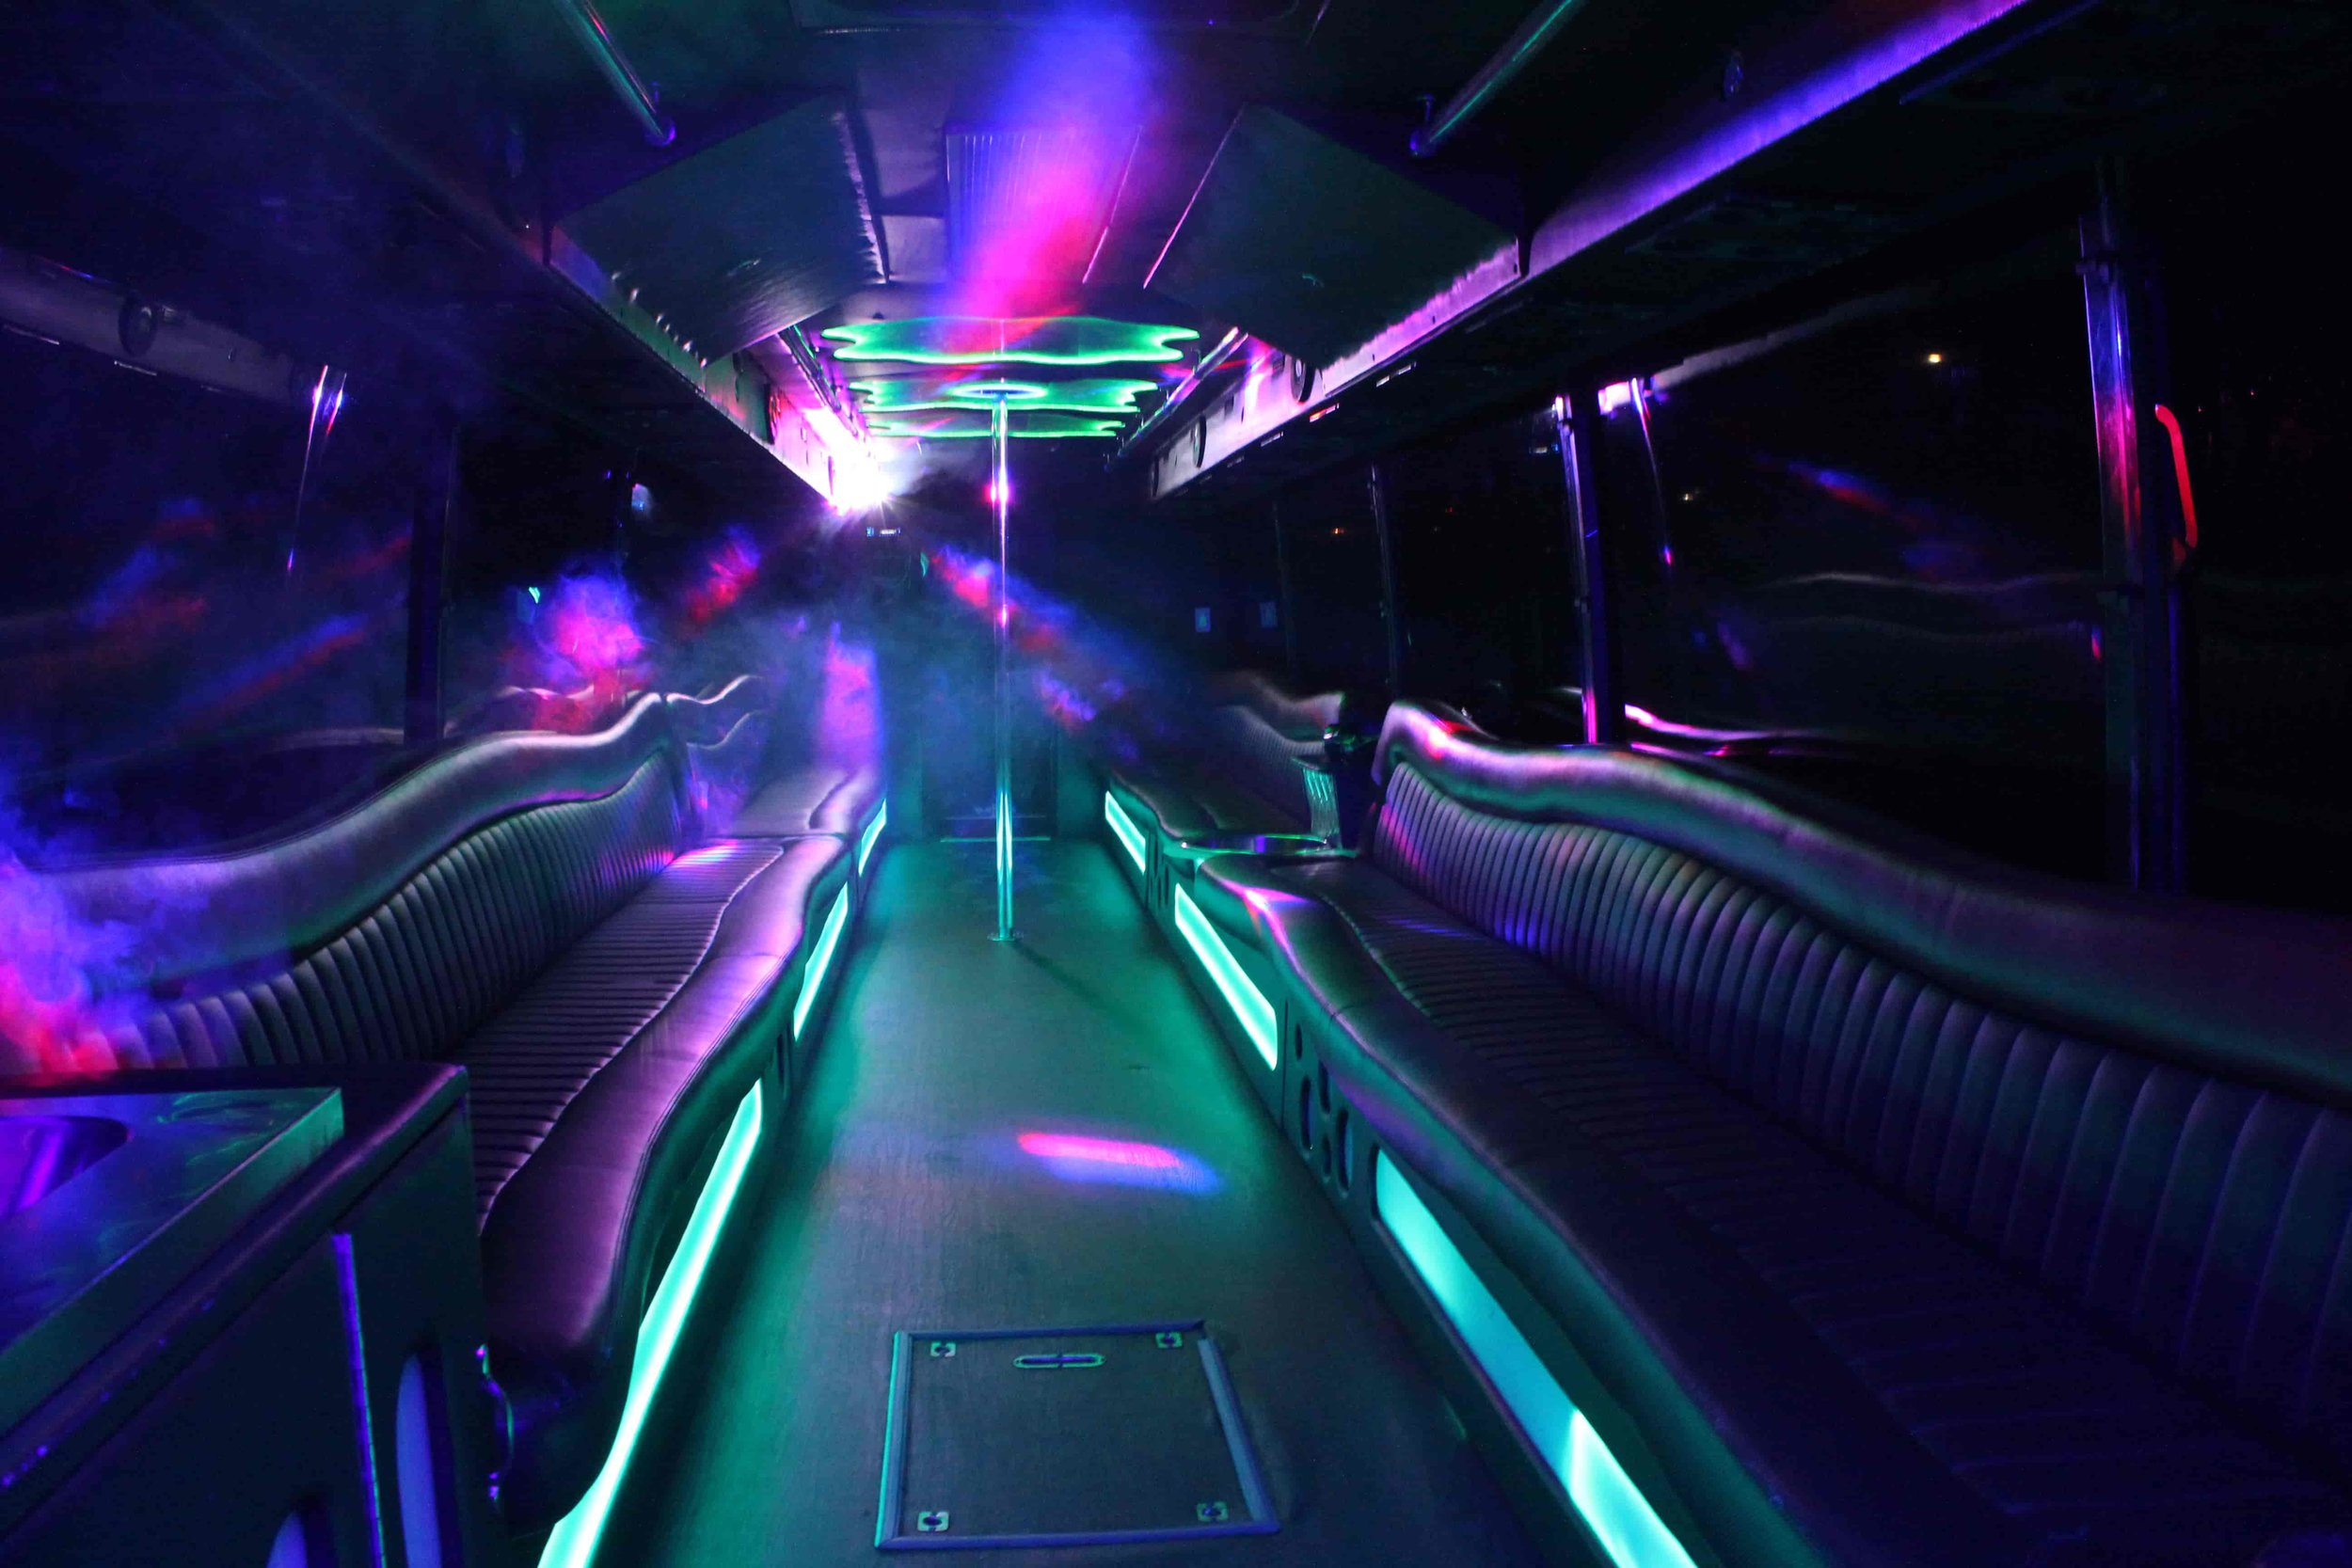 Patriot Limo Bus with a fog machine and laser lights